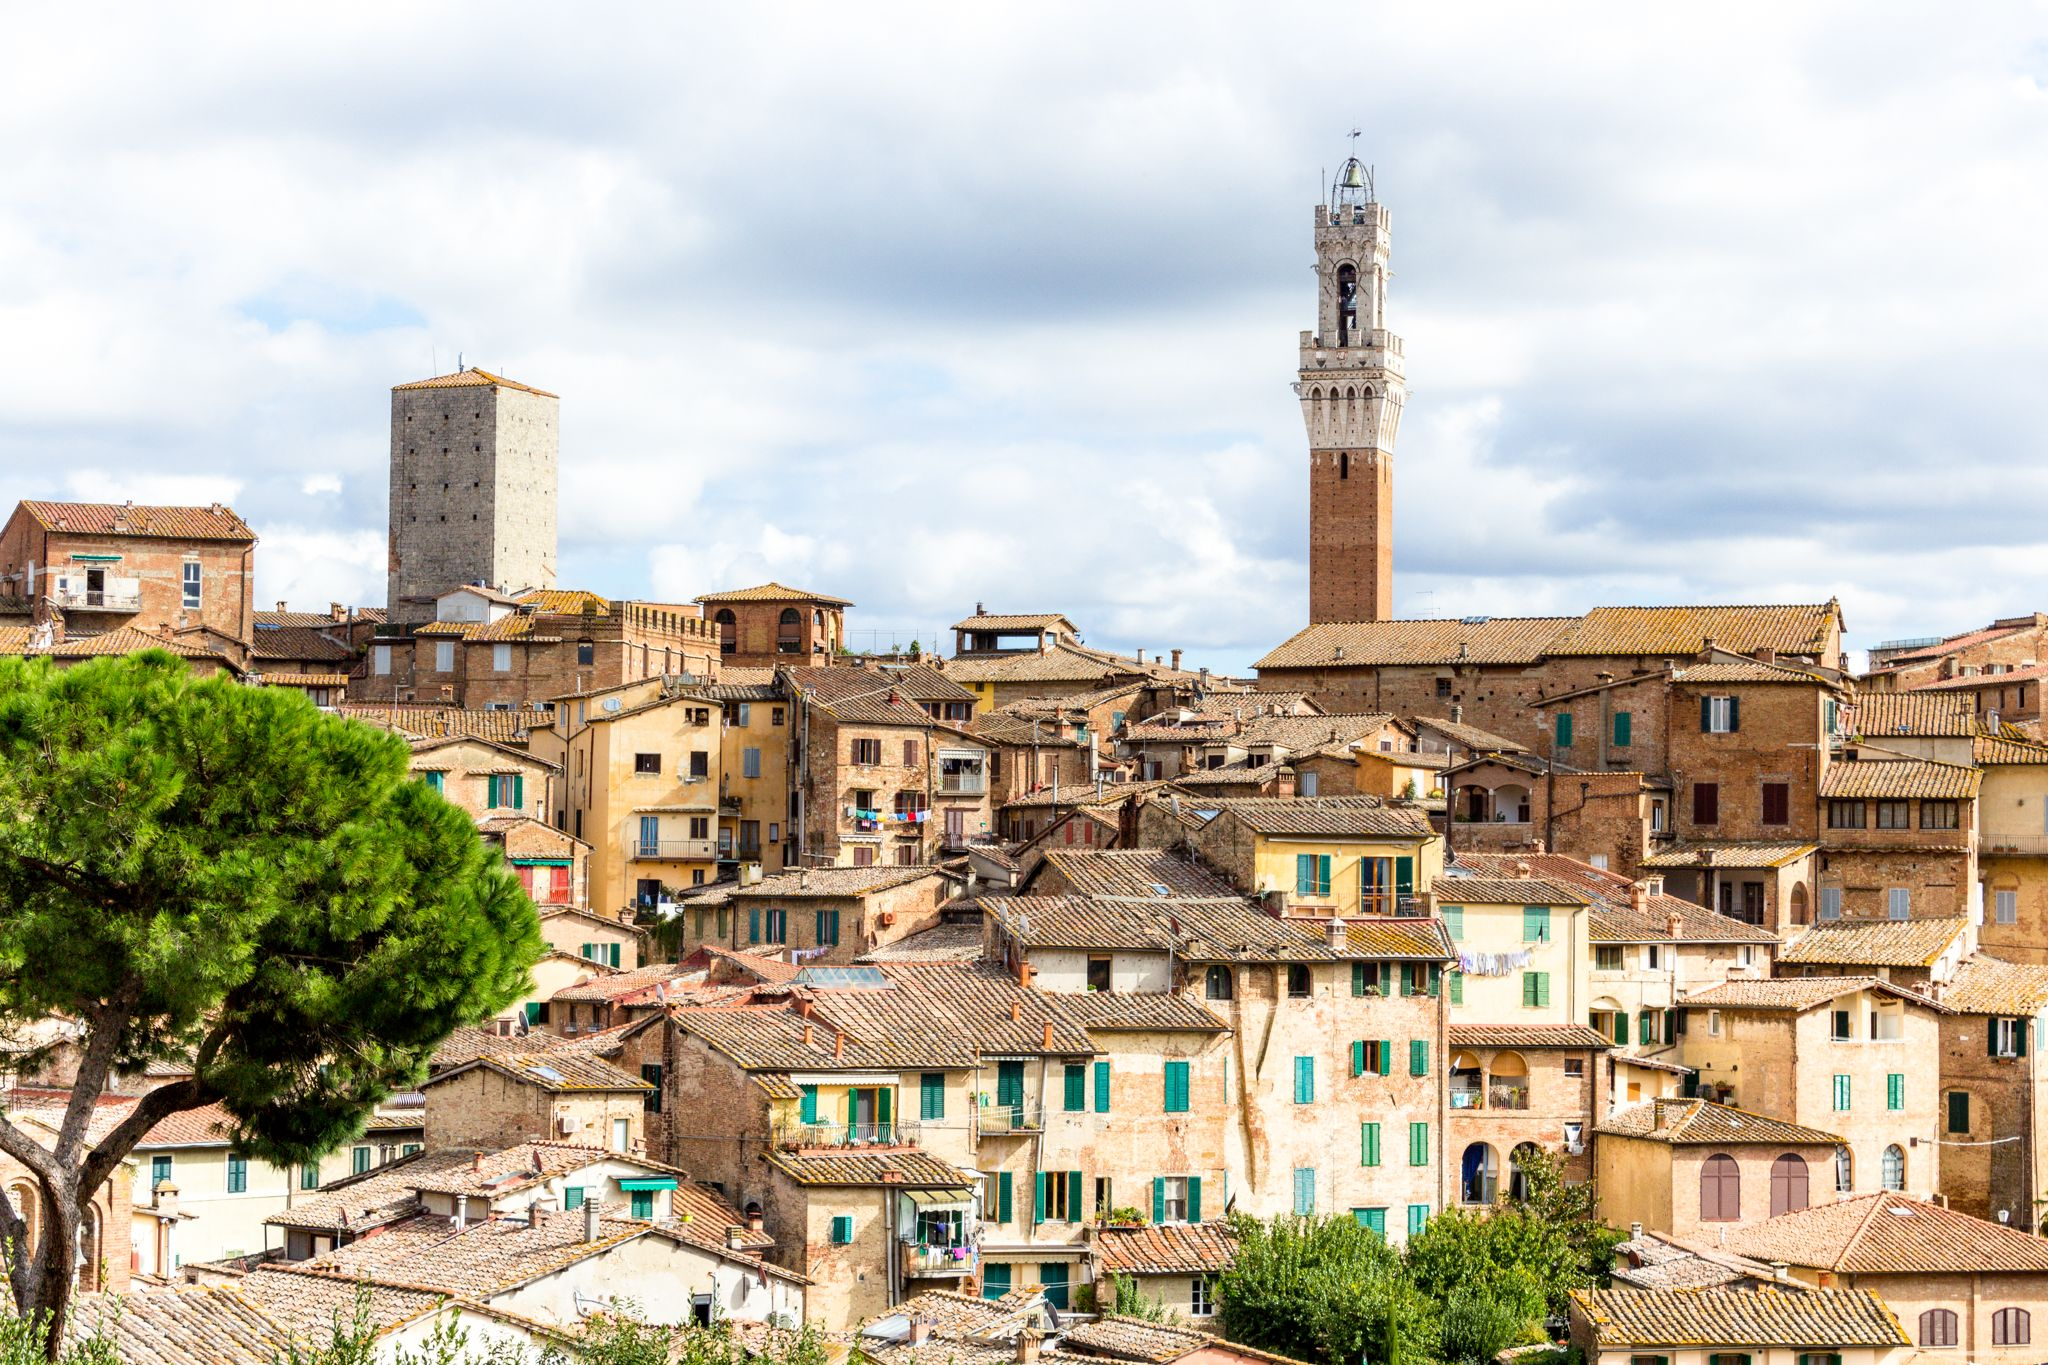 Torre del Mangia, a tower in Siena, Italy